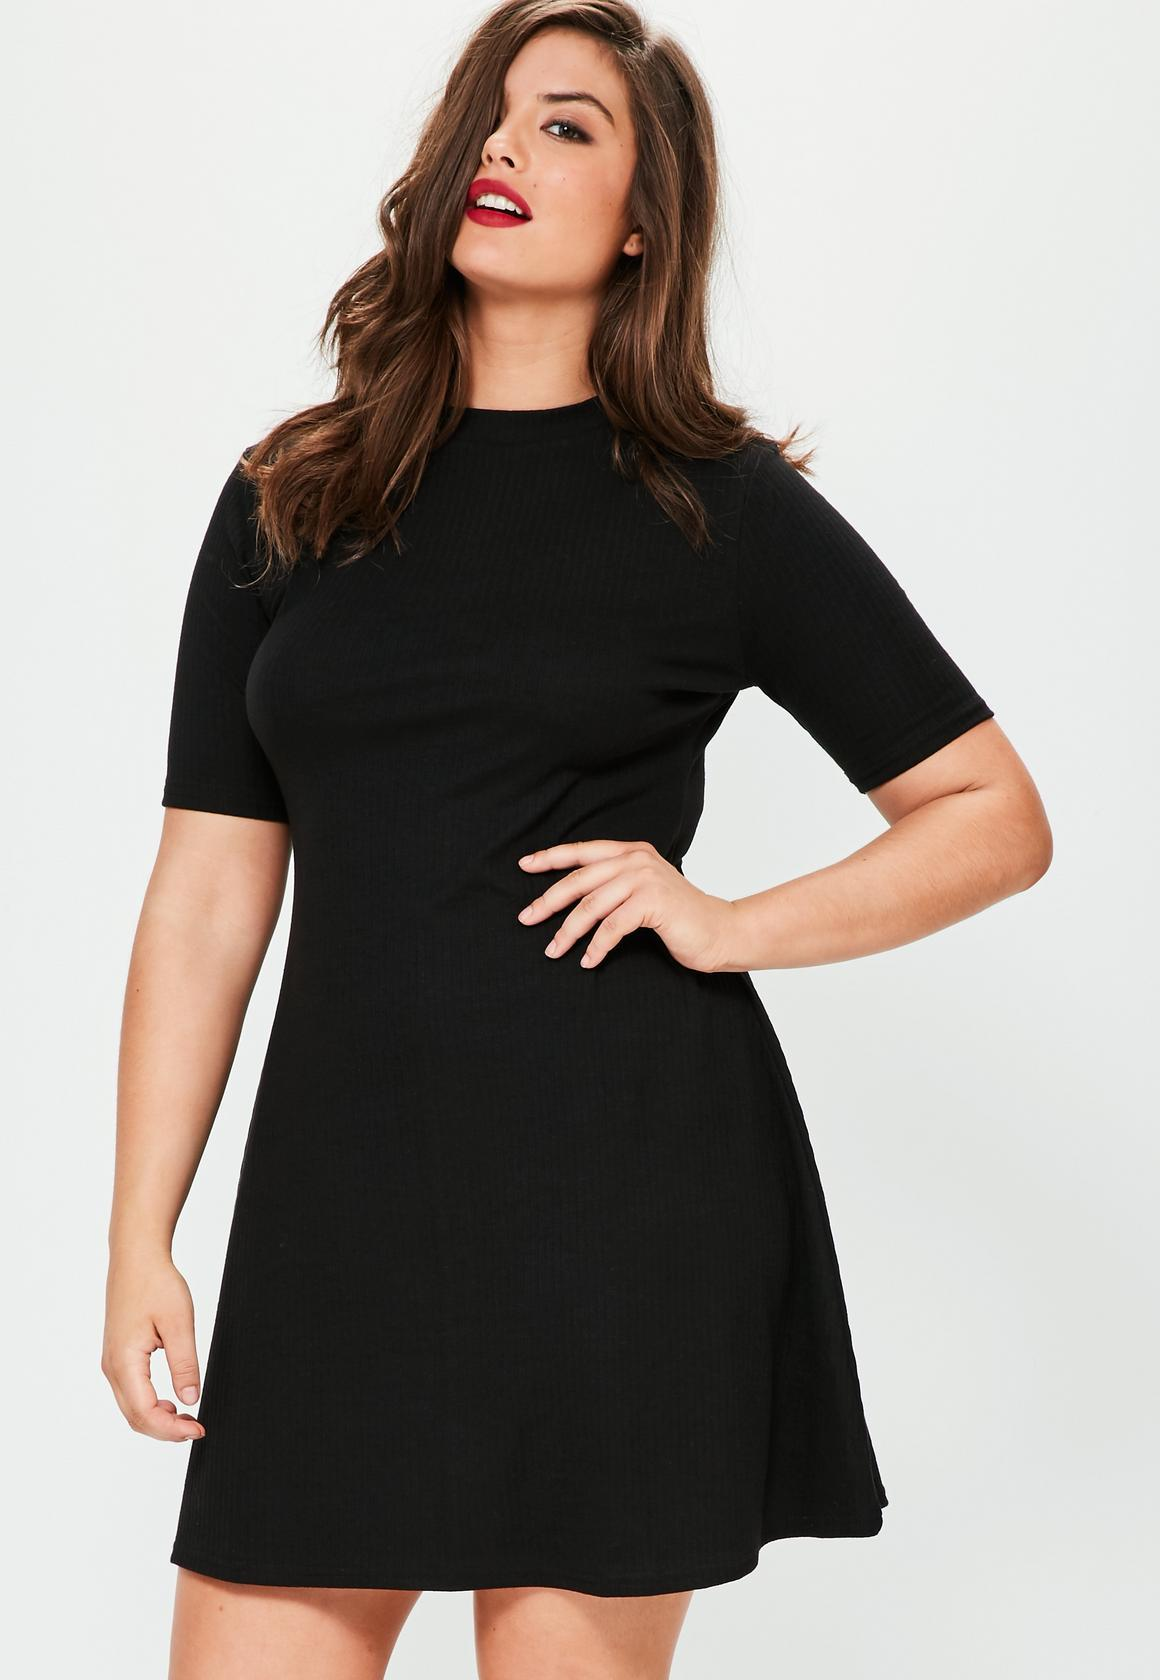 basic black dresses plus size 2